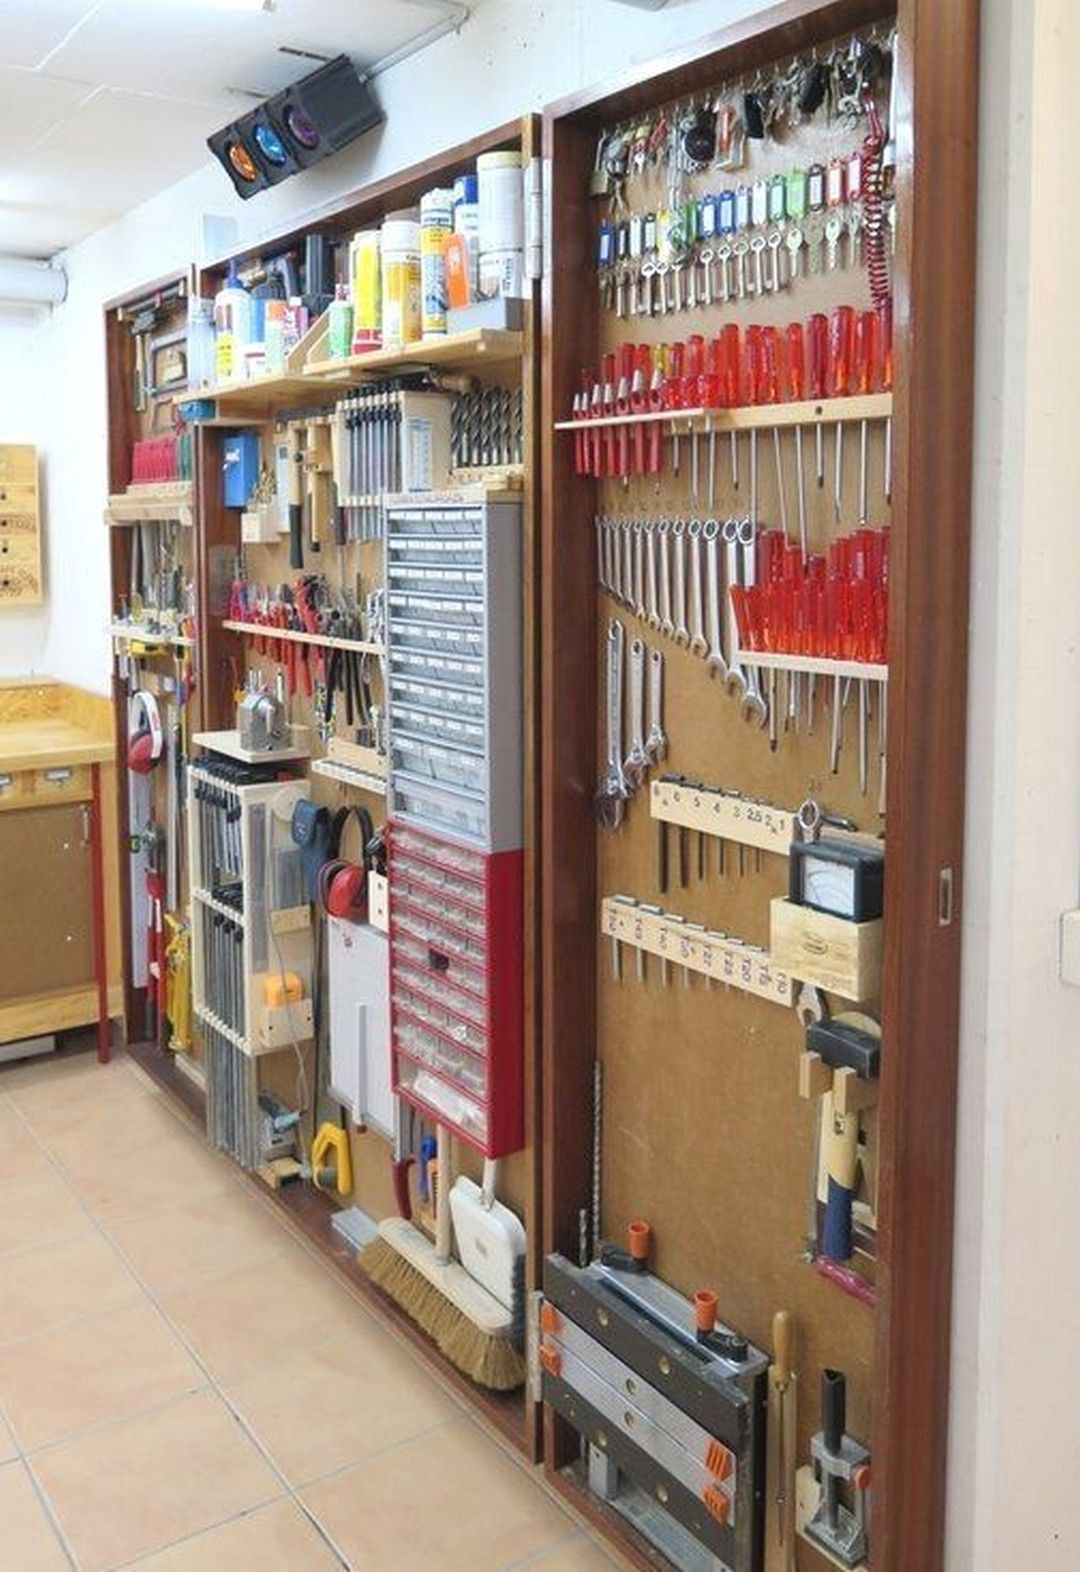 20 Bright Garage Storage Solutions For Your Home Garage Homedesign Homedesignideas Garage Organization Tips Garage Storage Organization Garage Organization